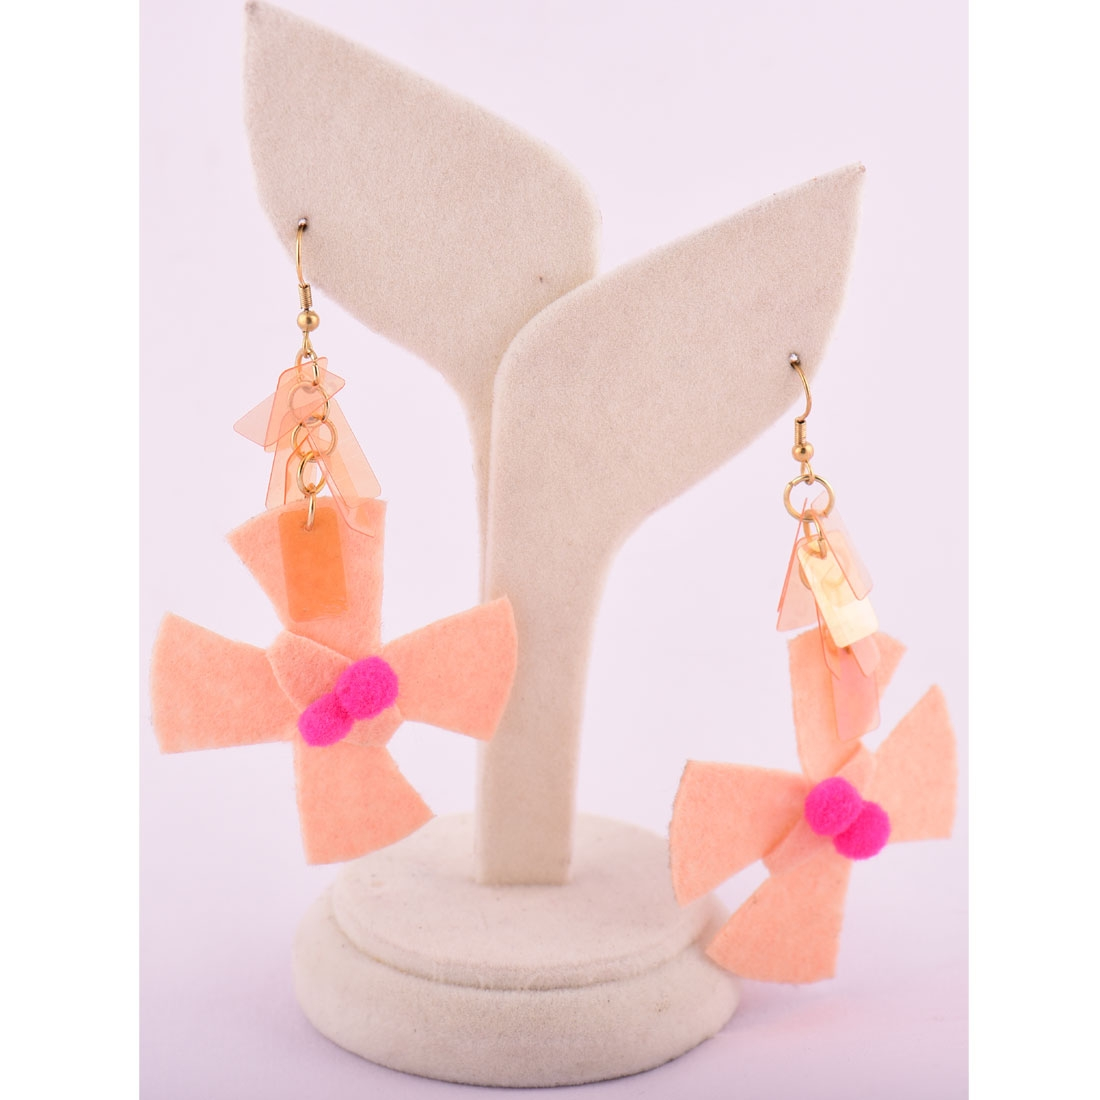 Beads India Almond Cream 1404418 Earrings